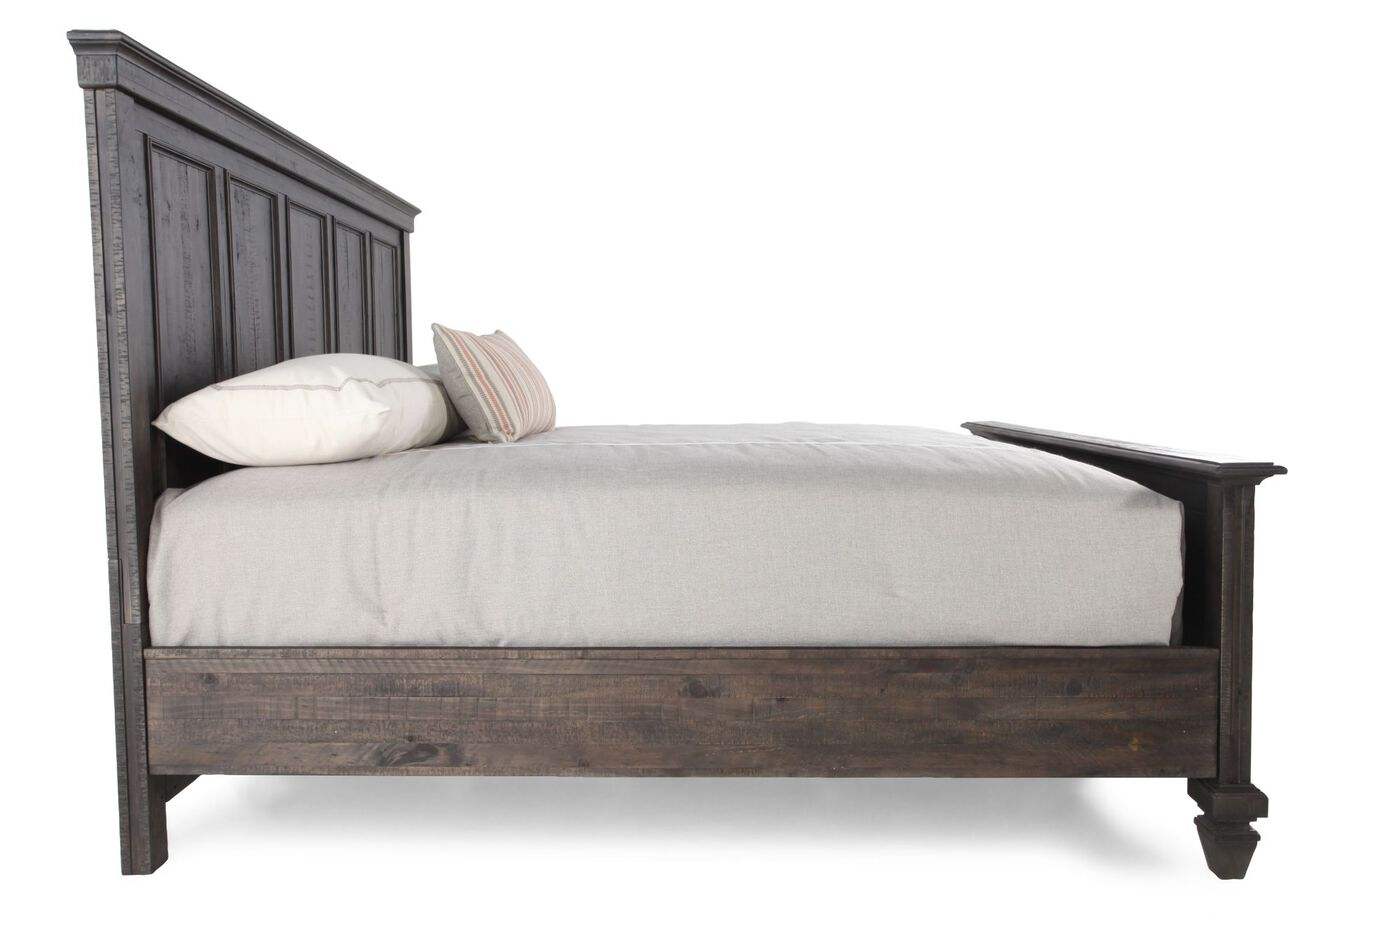 Magnussen Home Calistoga Panel Bed Mathis Brothers Furniture